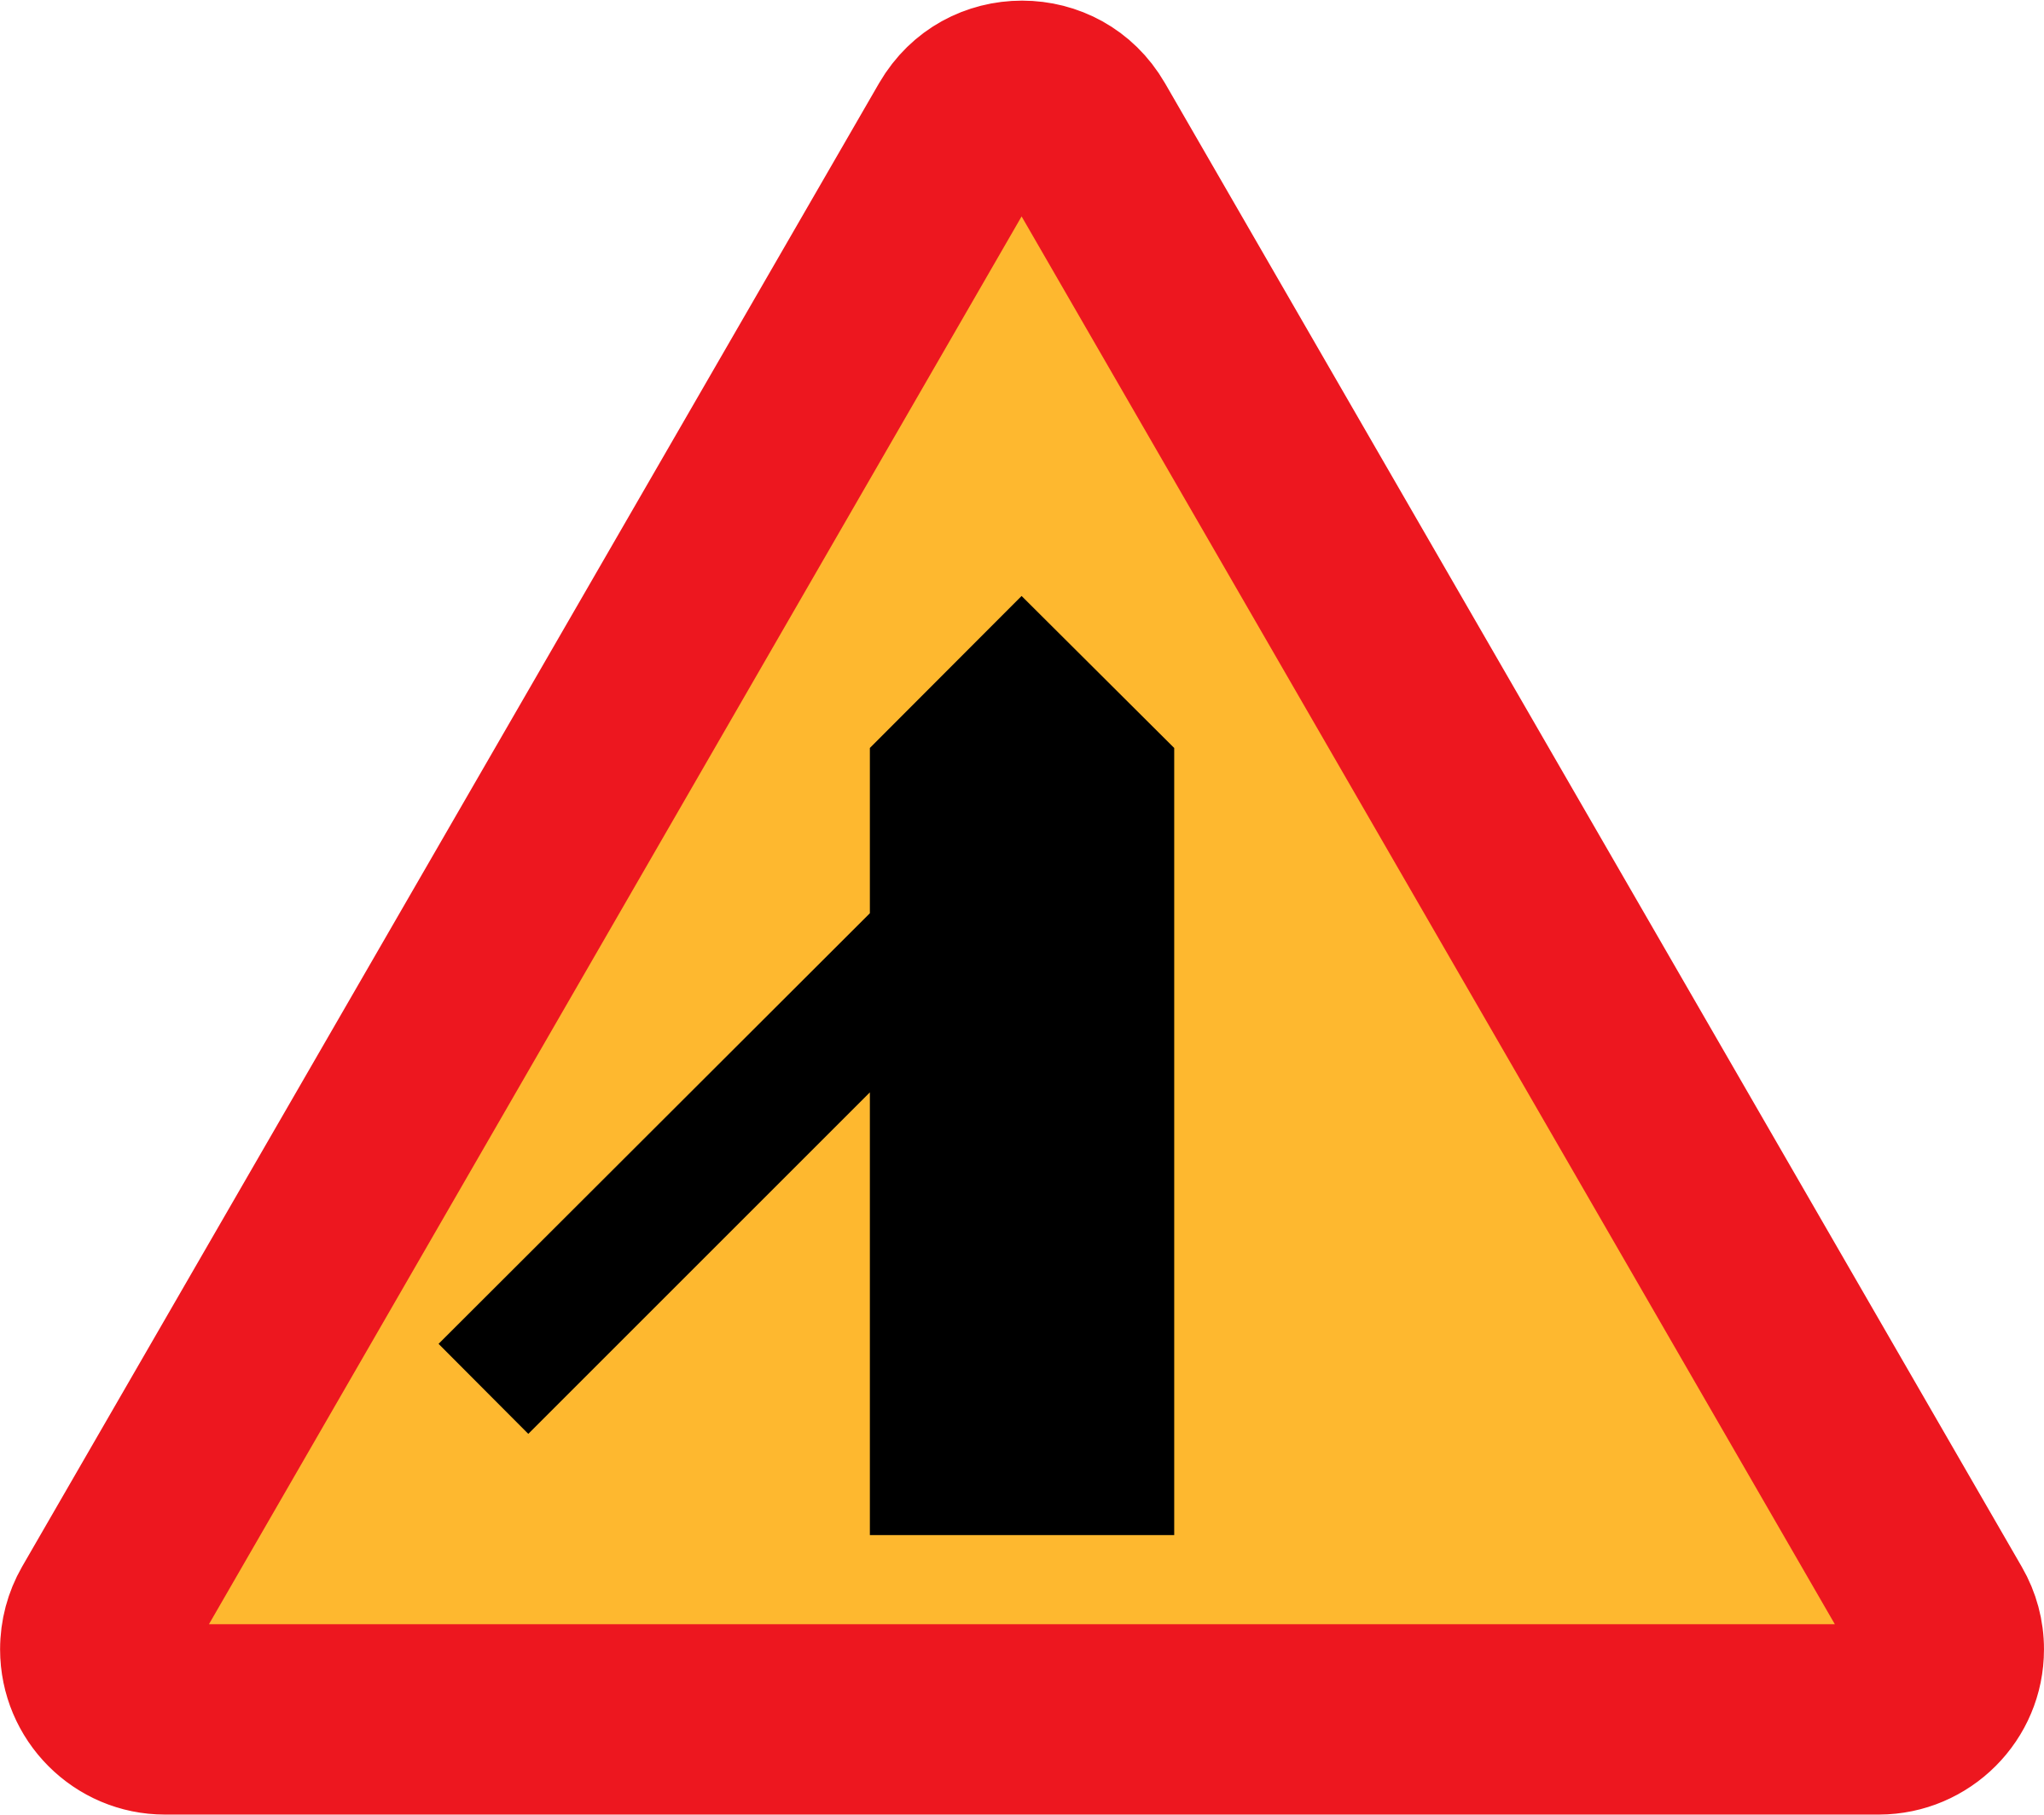 Roadlayout sign 6 by ryanlerch